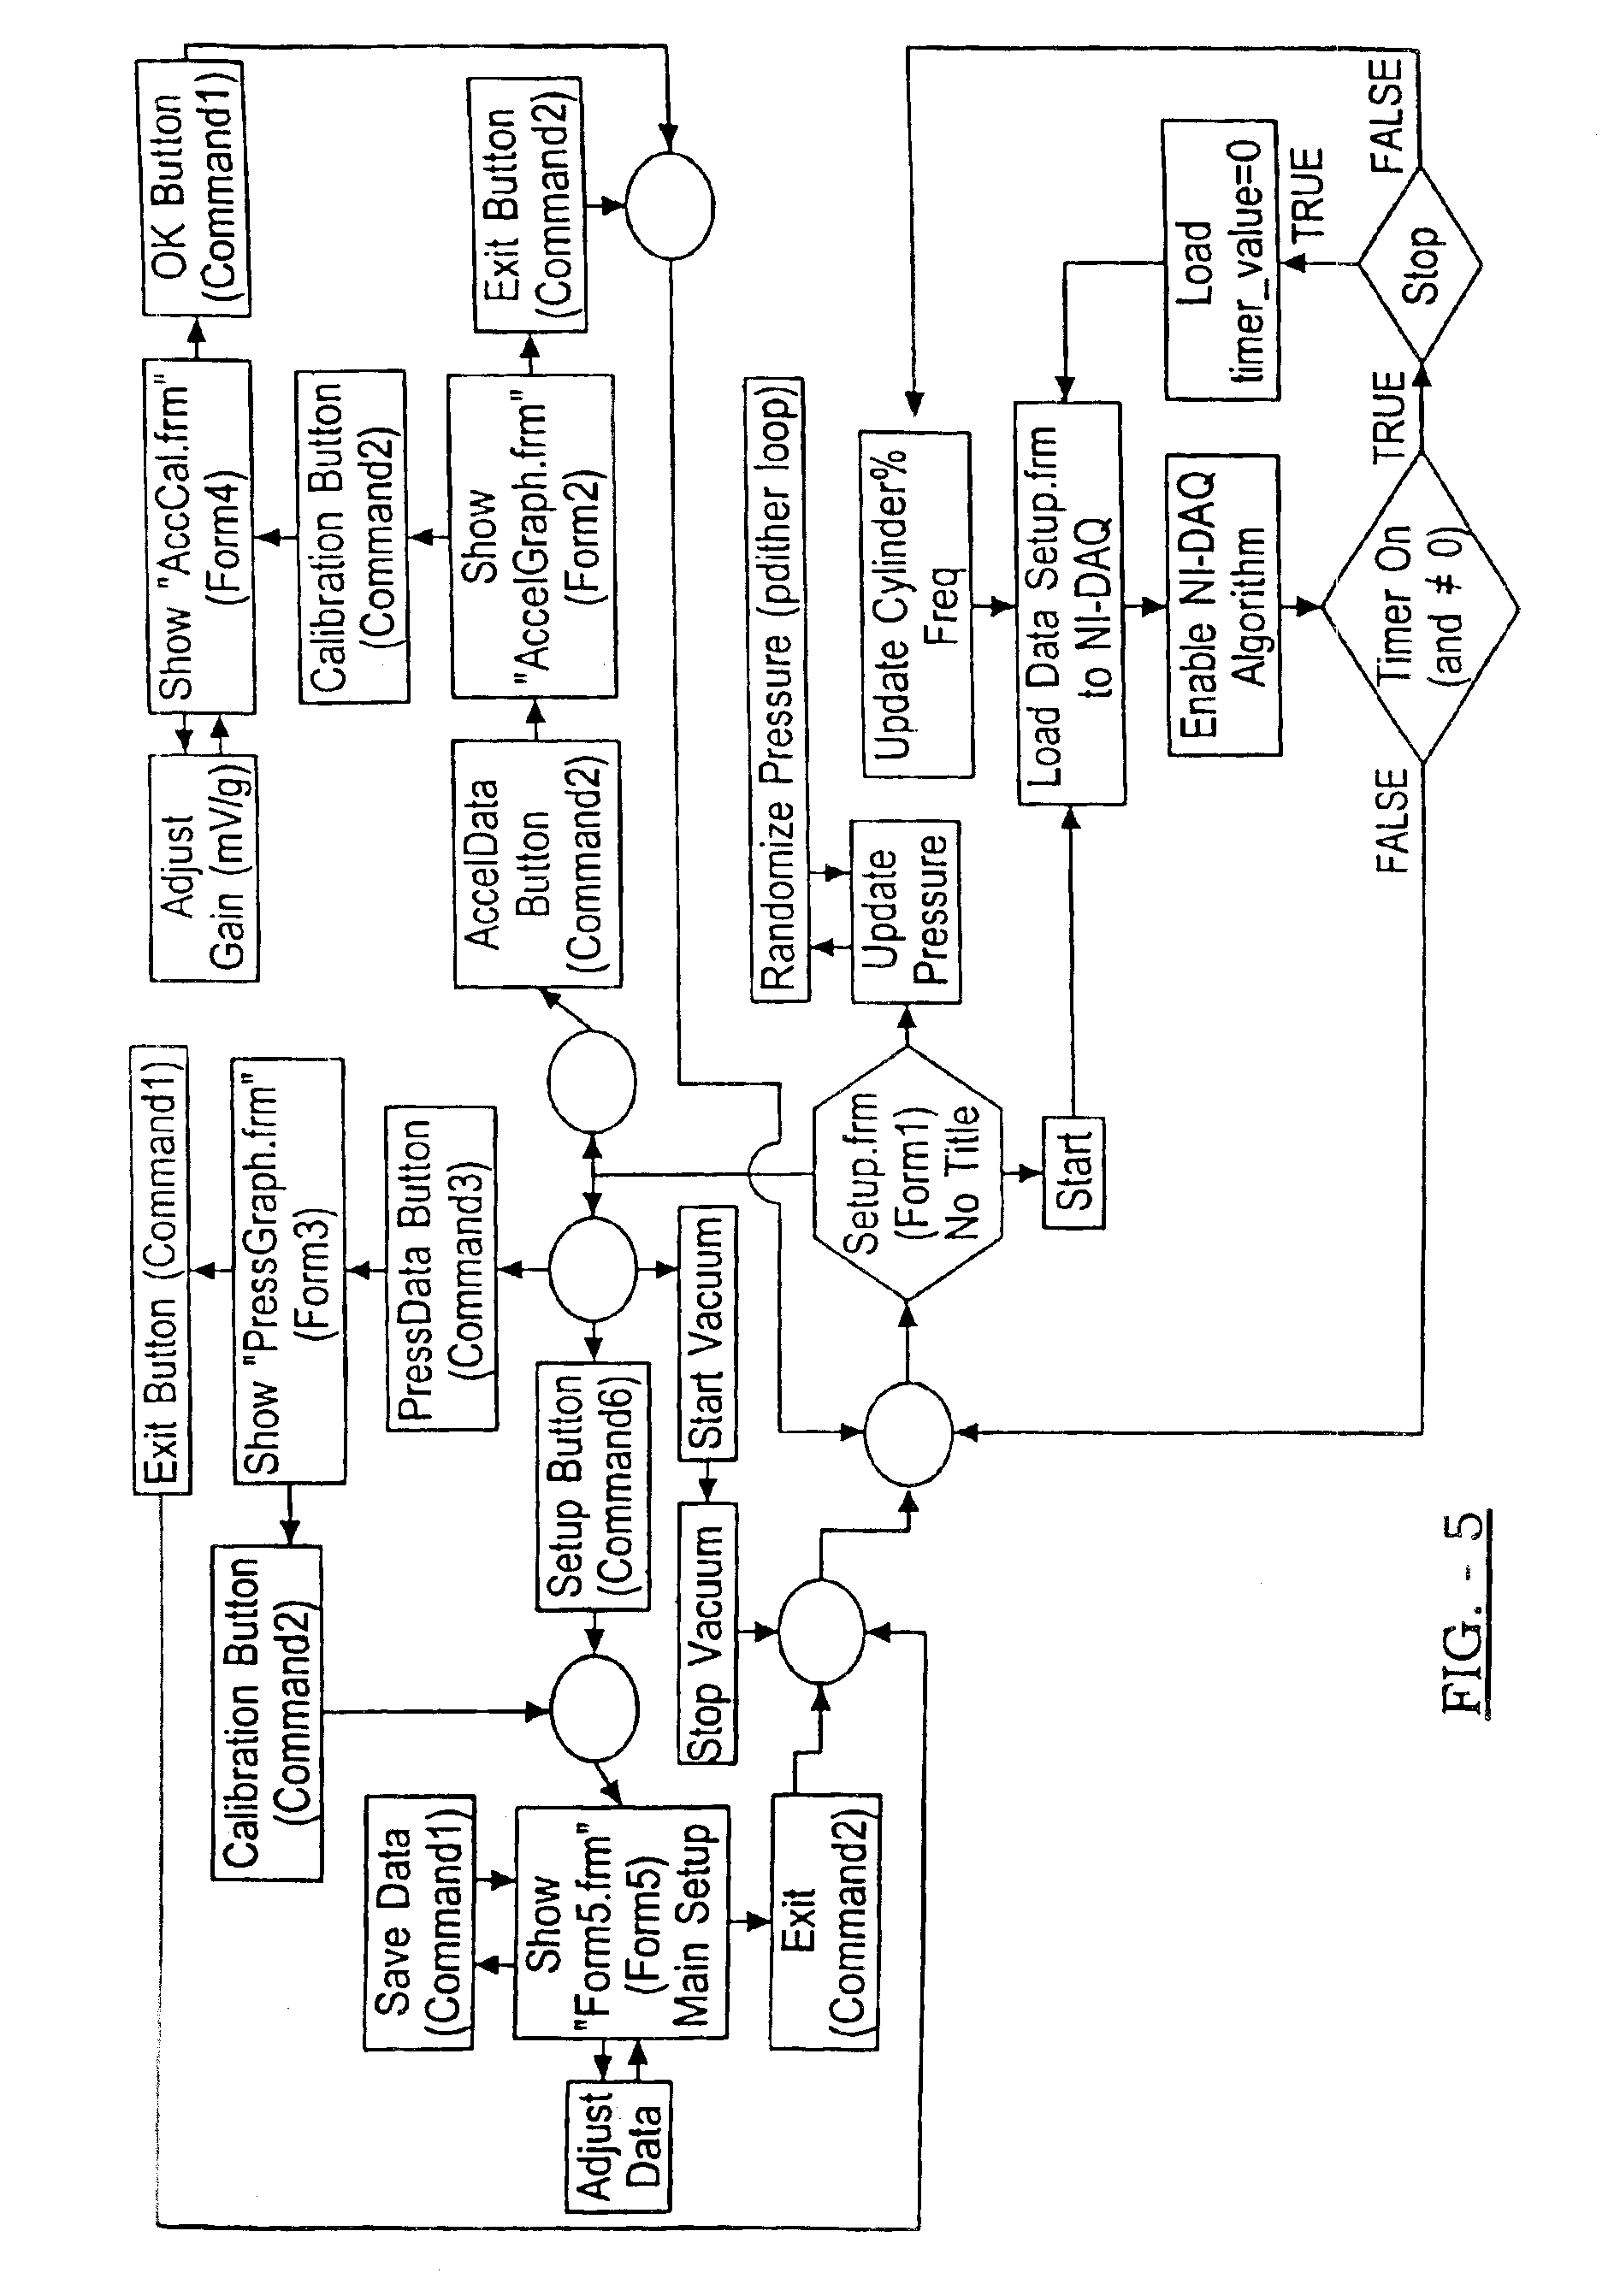 patente us7024323 control system for a failure mode testing system  patent drawing